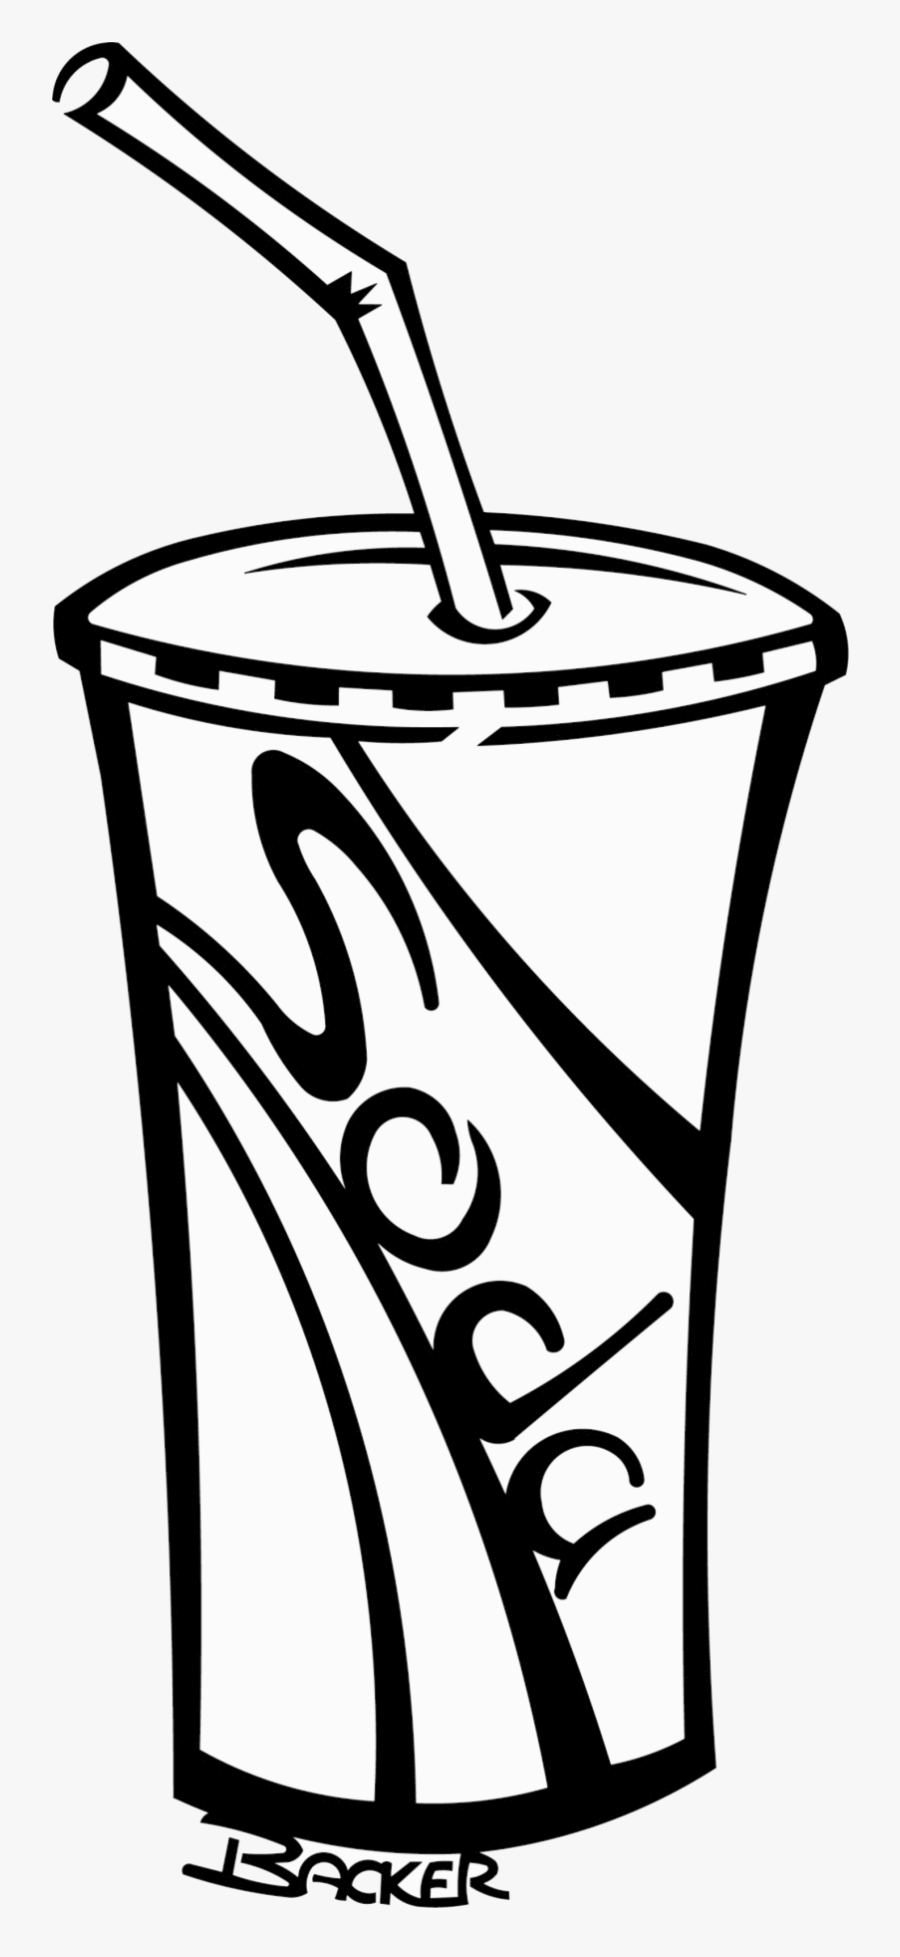 Soda Cup Soft Drinks Clipart Black And White Free.